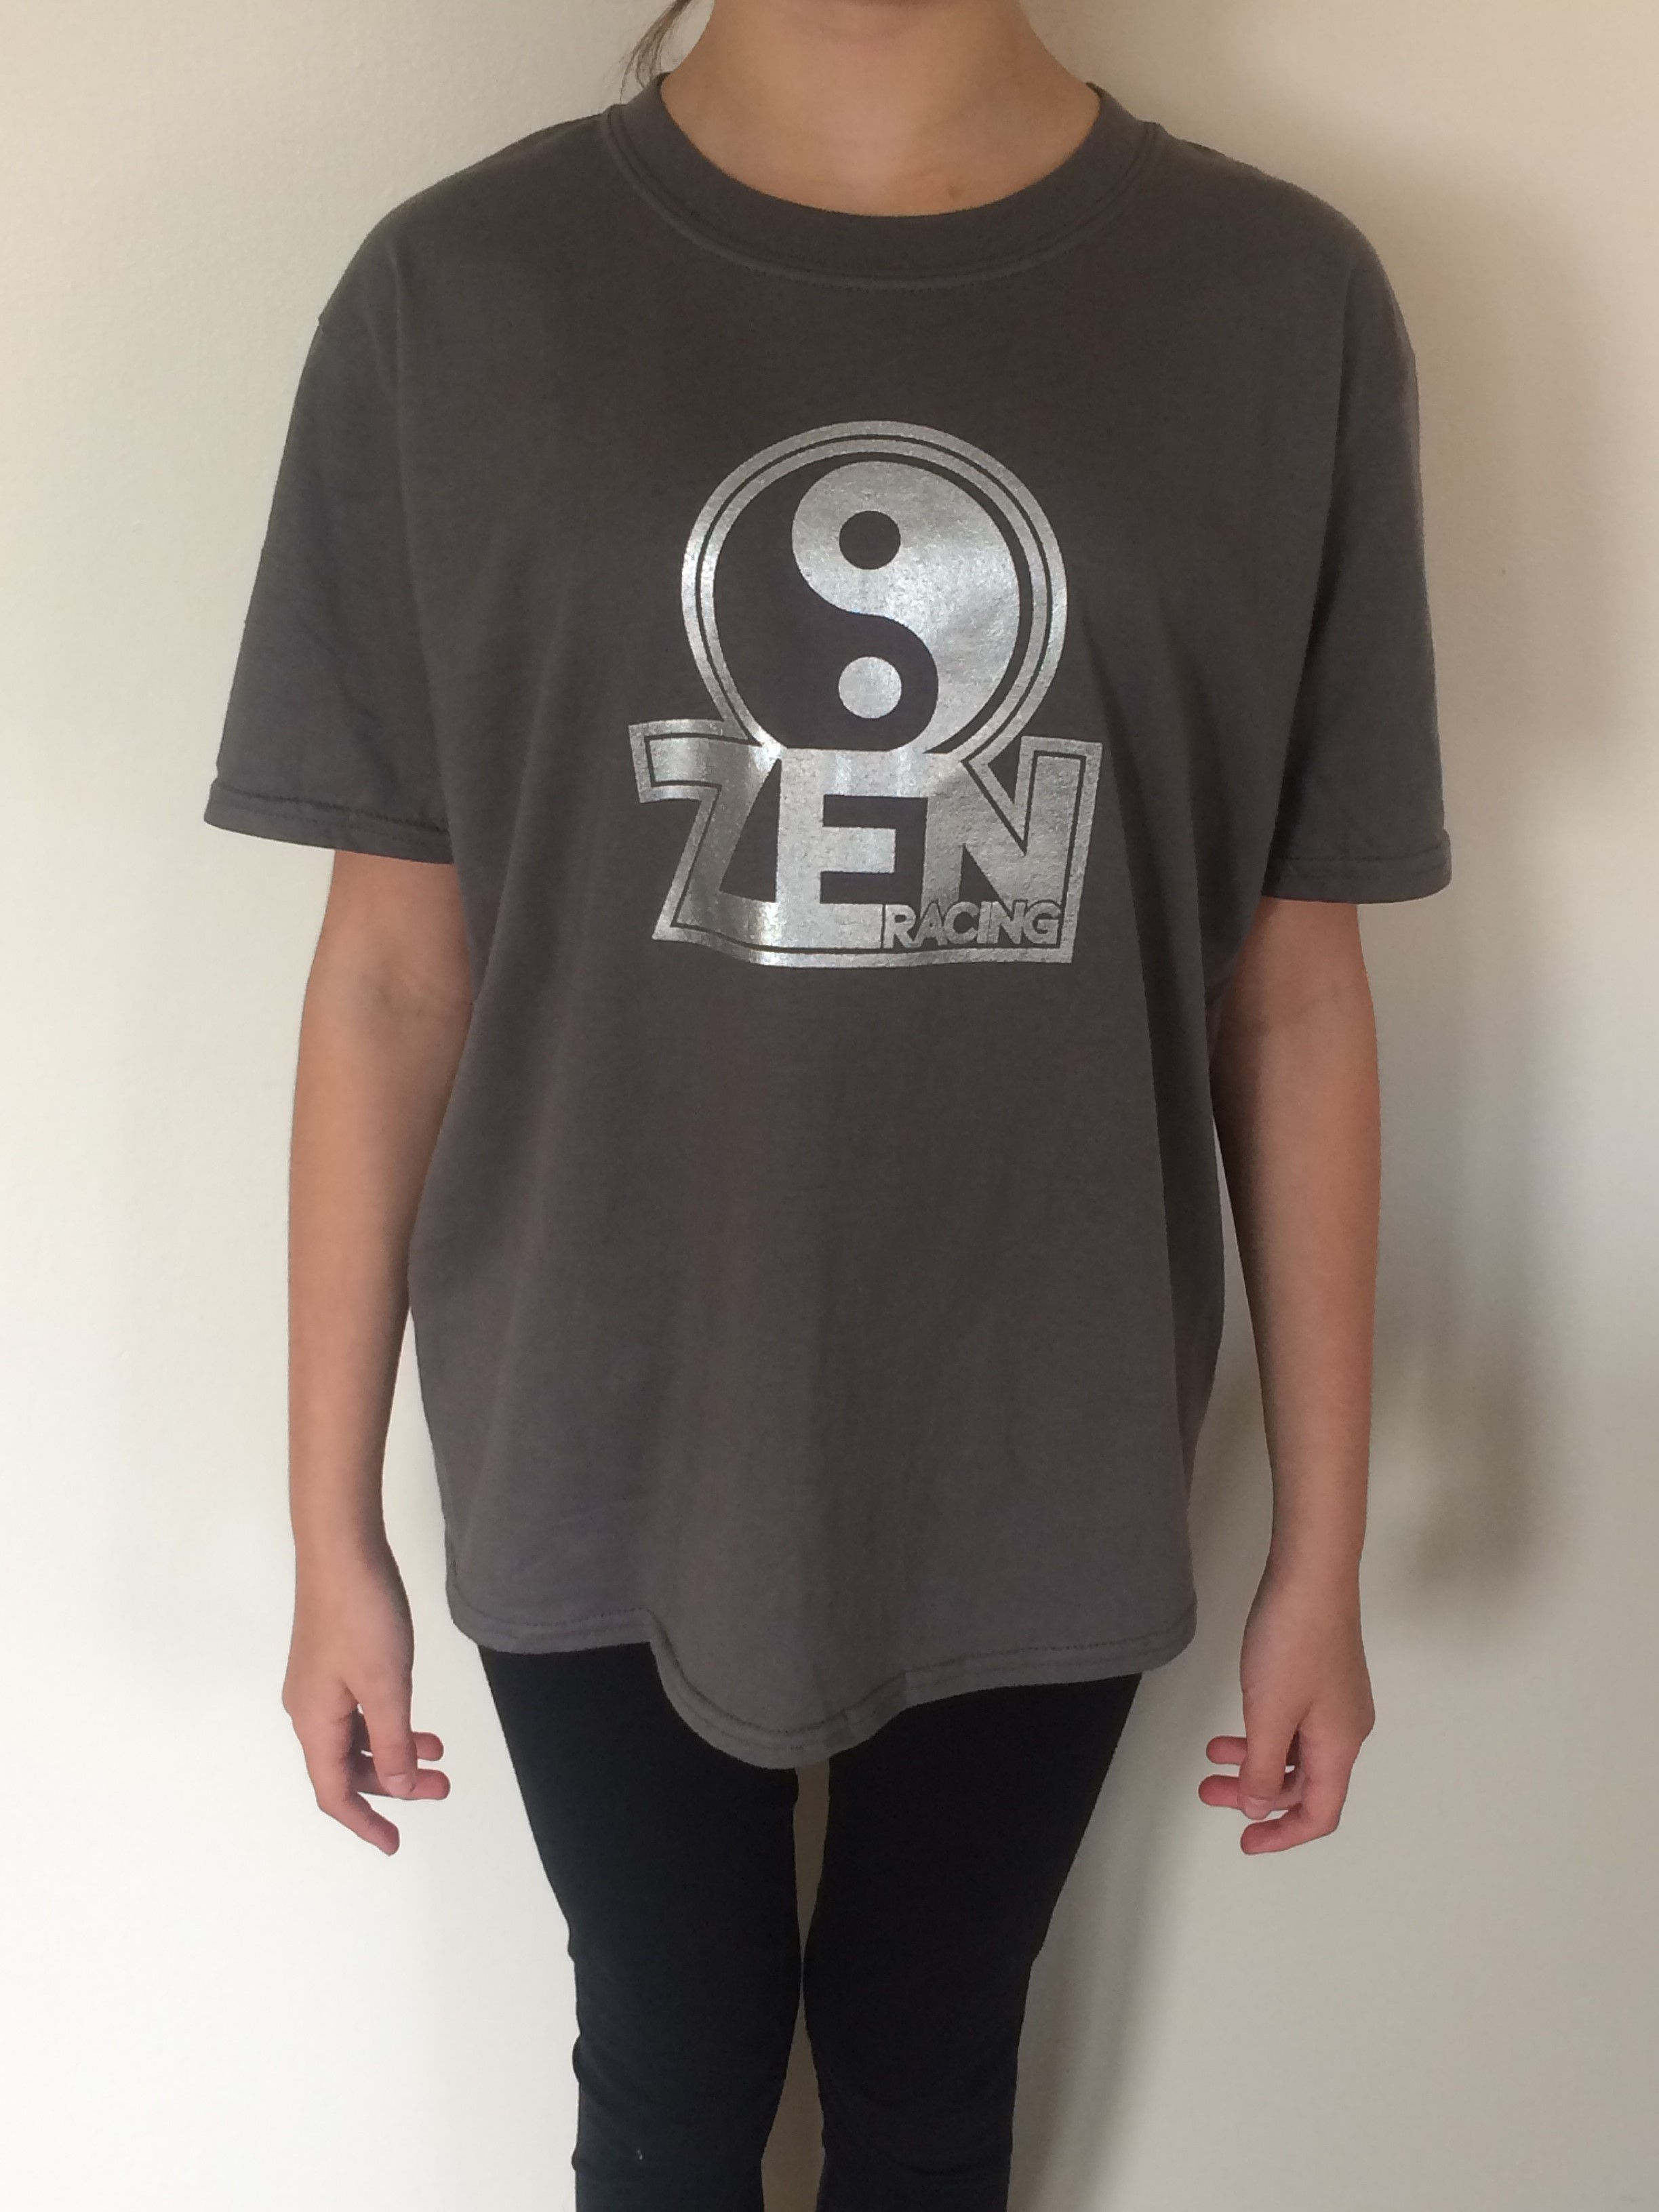 Zen-Racing T-Shirt Large